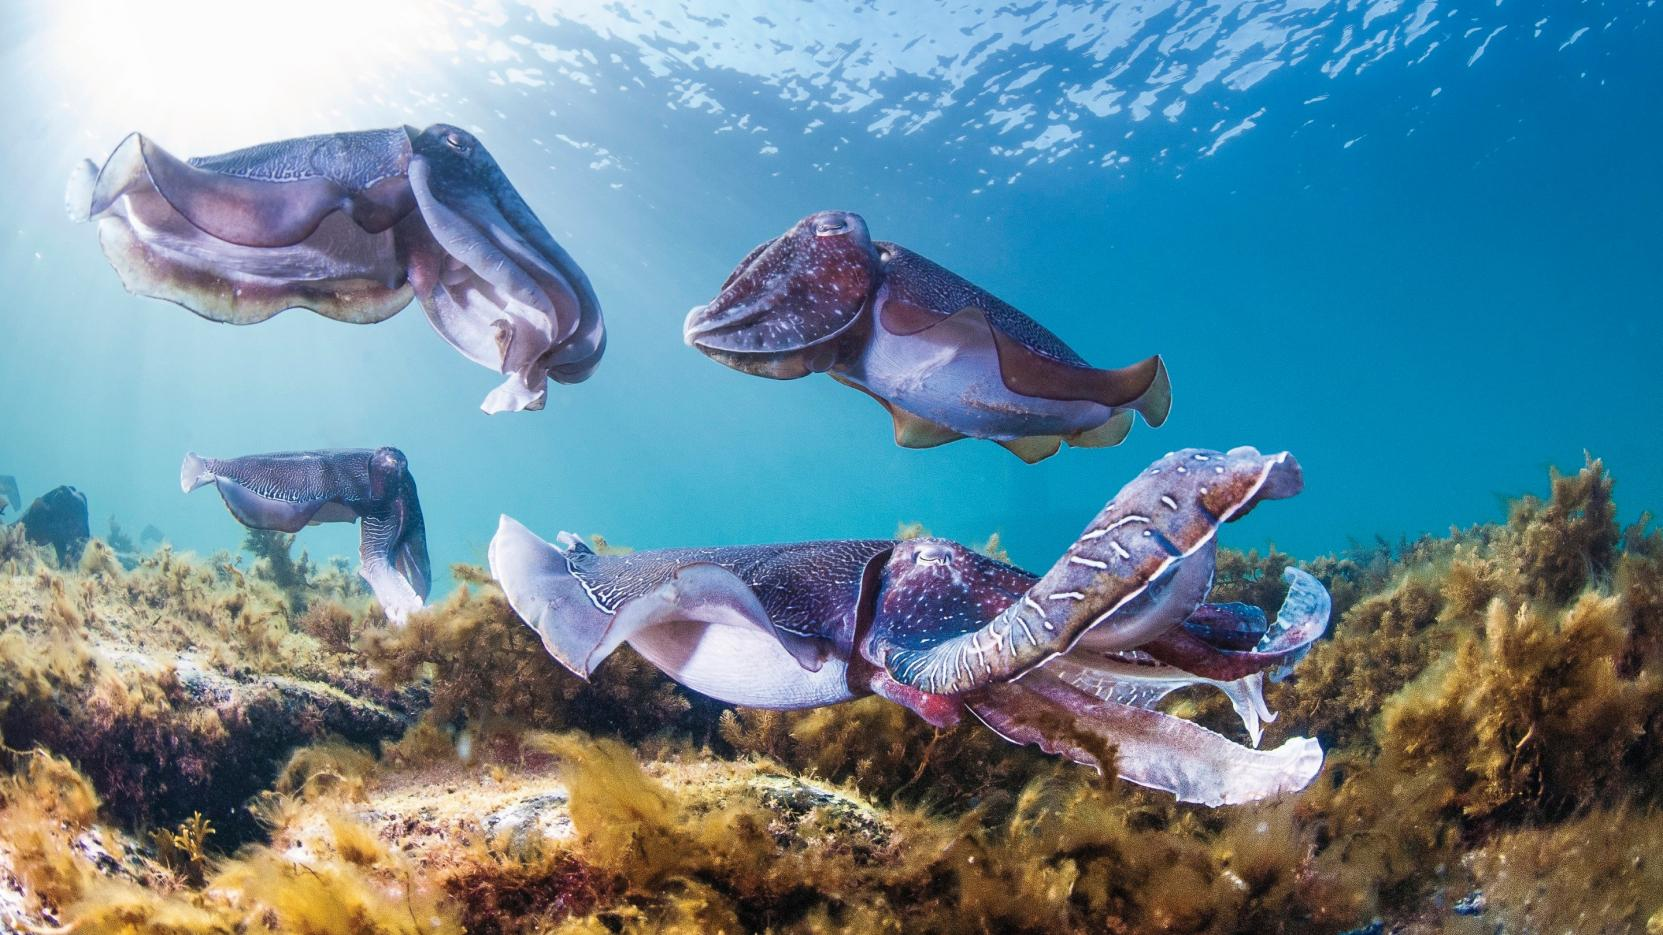 Swim with the giant cuttlefish with PureSA, Stony Point, SA © Carl Charter, South Australian Tourism Commission